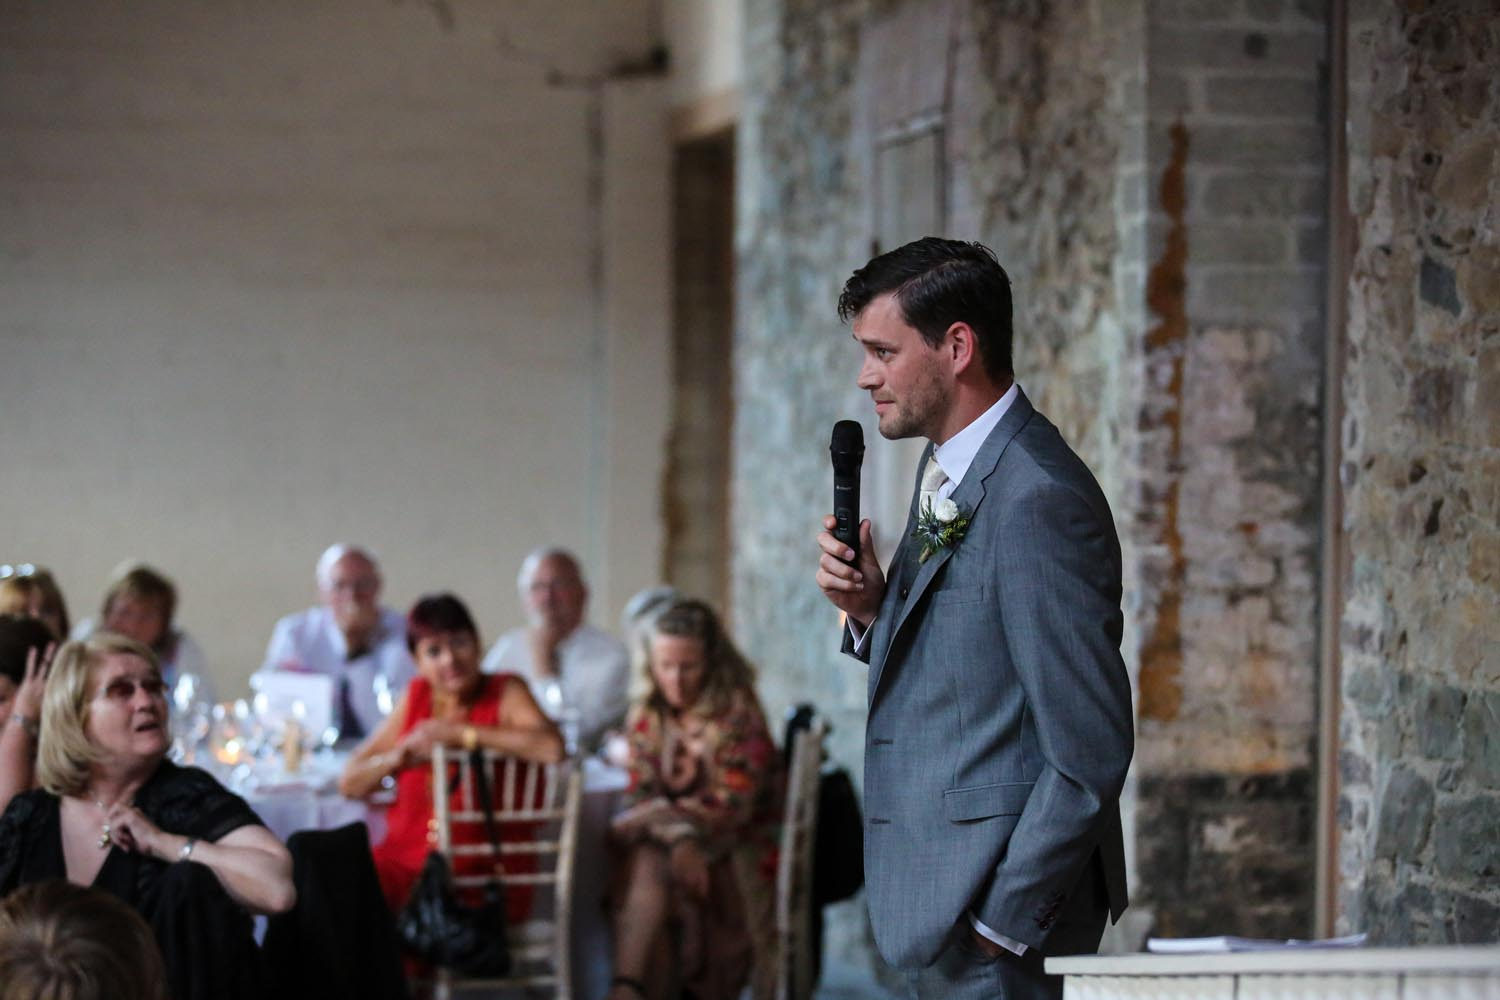 Groom making a speech on his wedding day